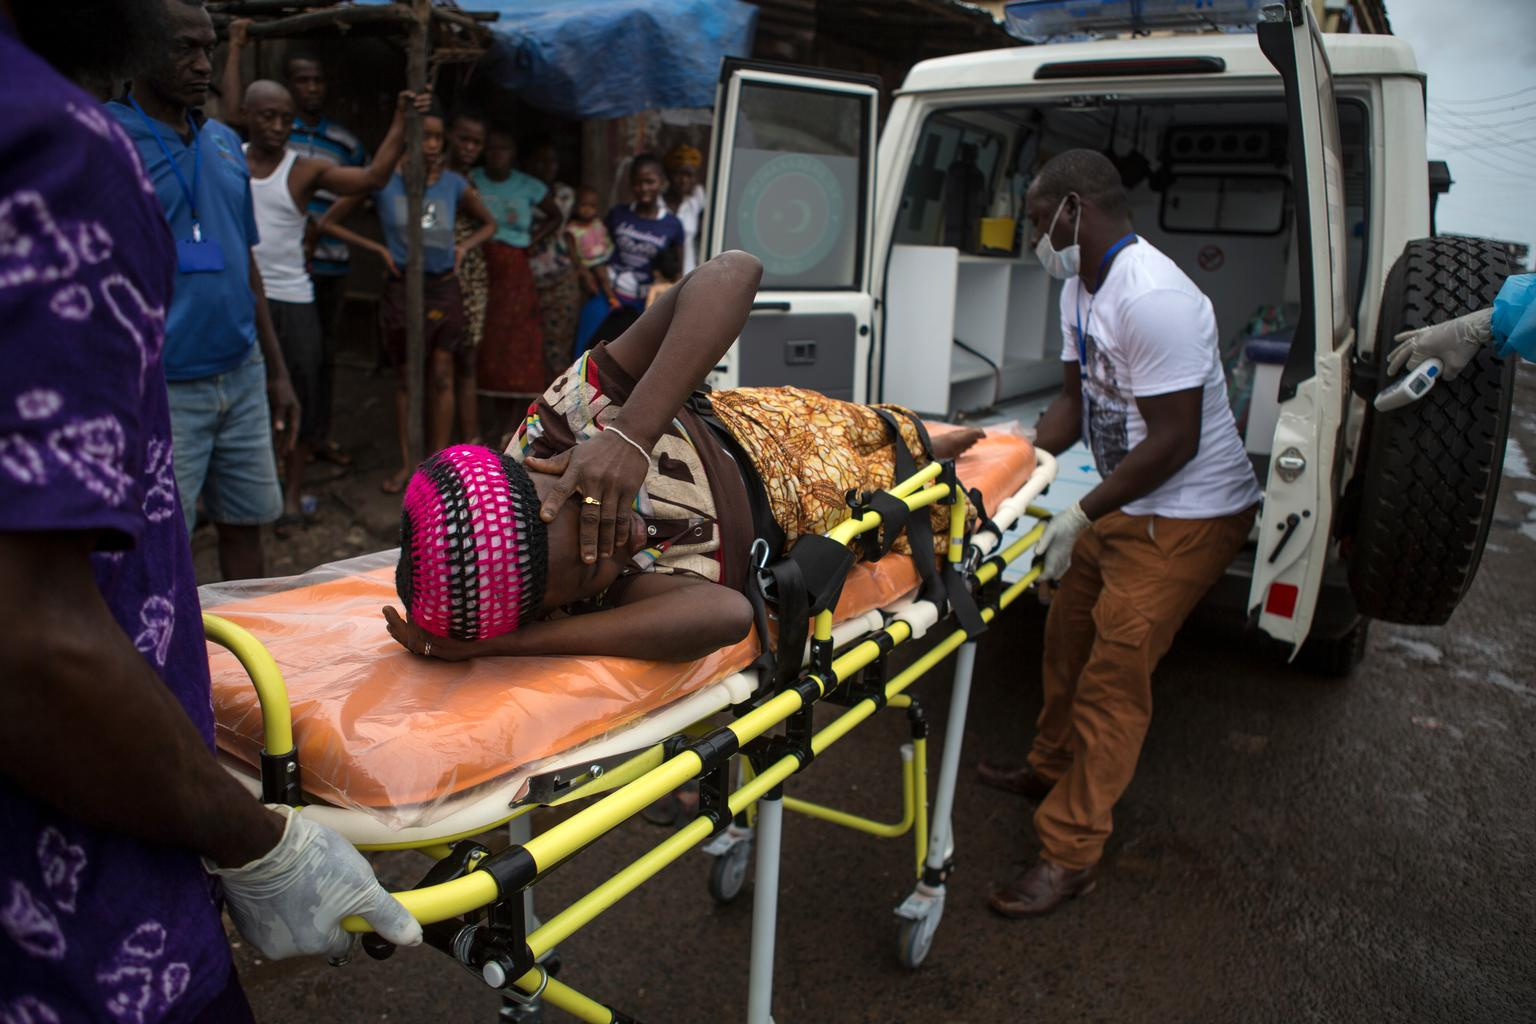 A woman, who is pregnant and suspected of having EVD, lies on a stretcher as health workers lift her into an ambulance. Nearby, people watch from a distance, afraid of getting too close to her.  © UNICEF/NYHQ2014-1580/Bindra